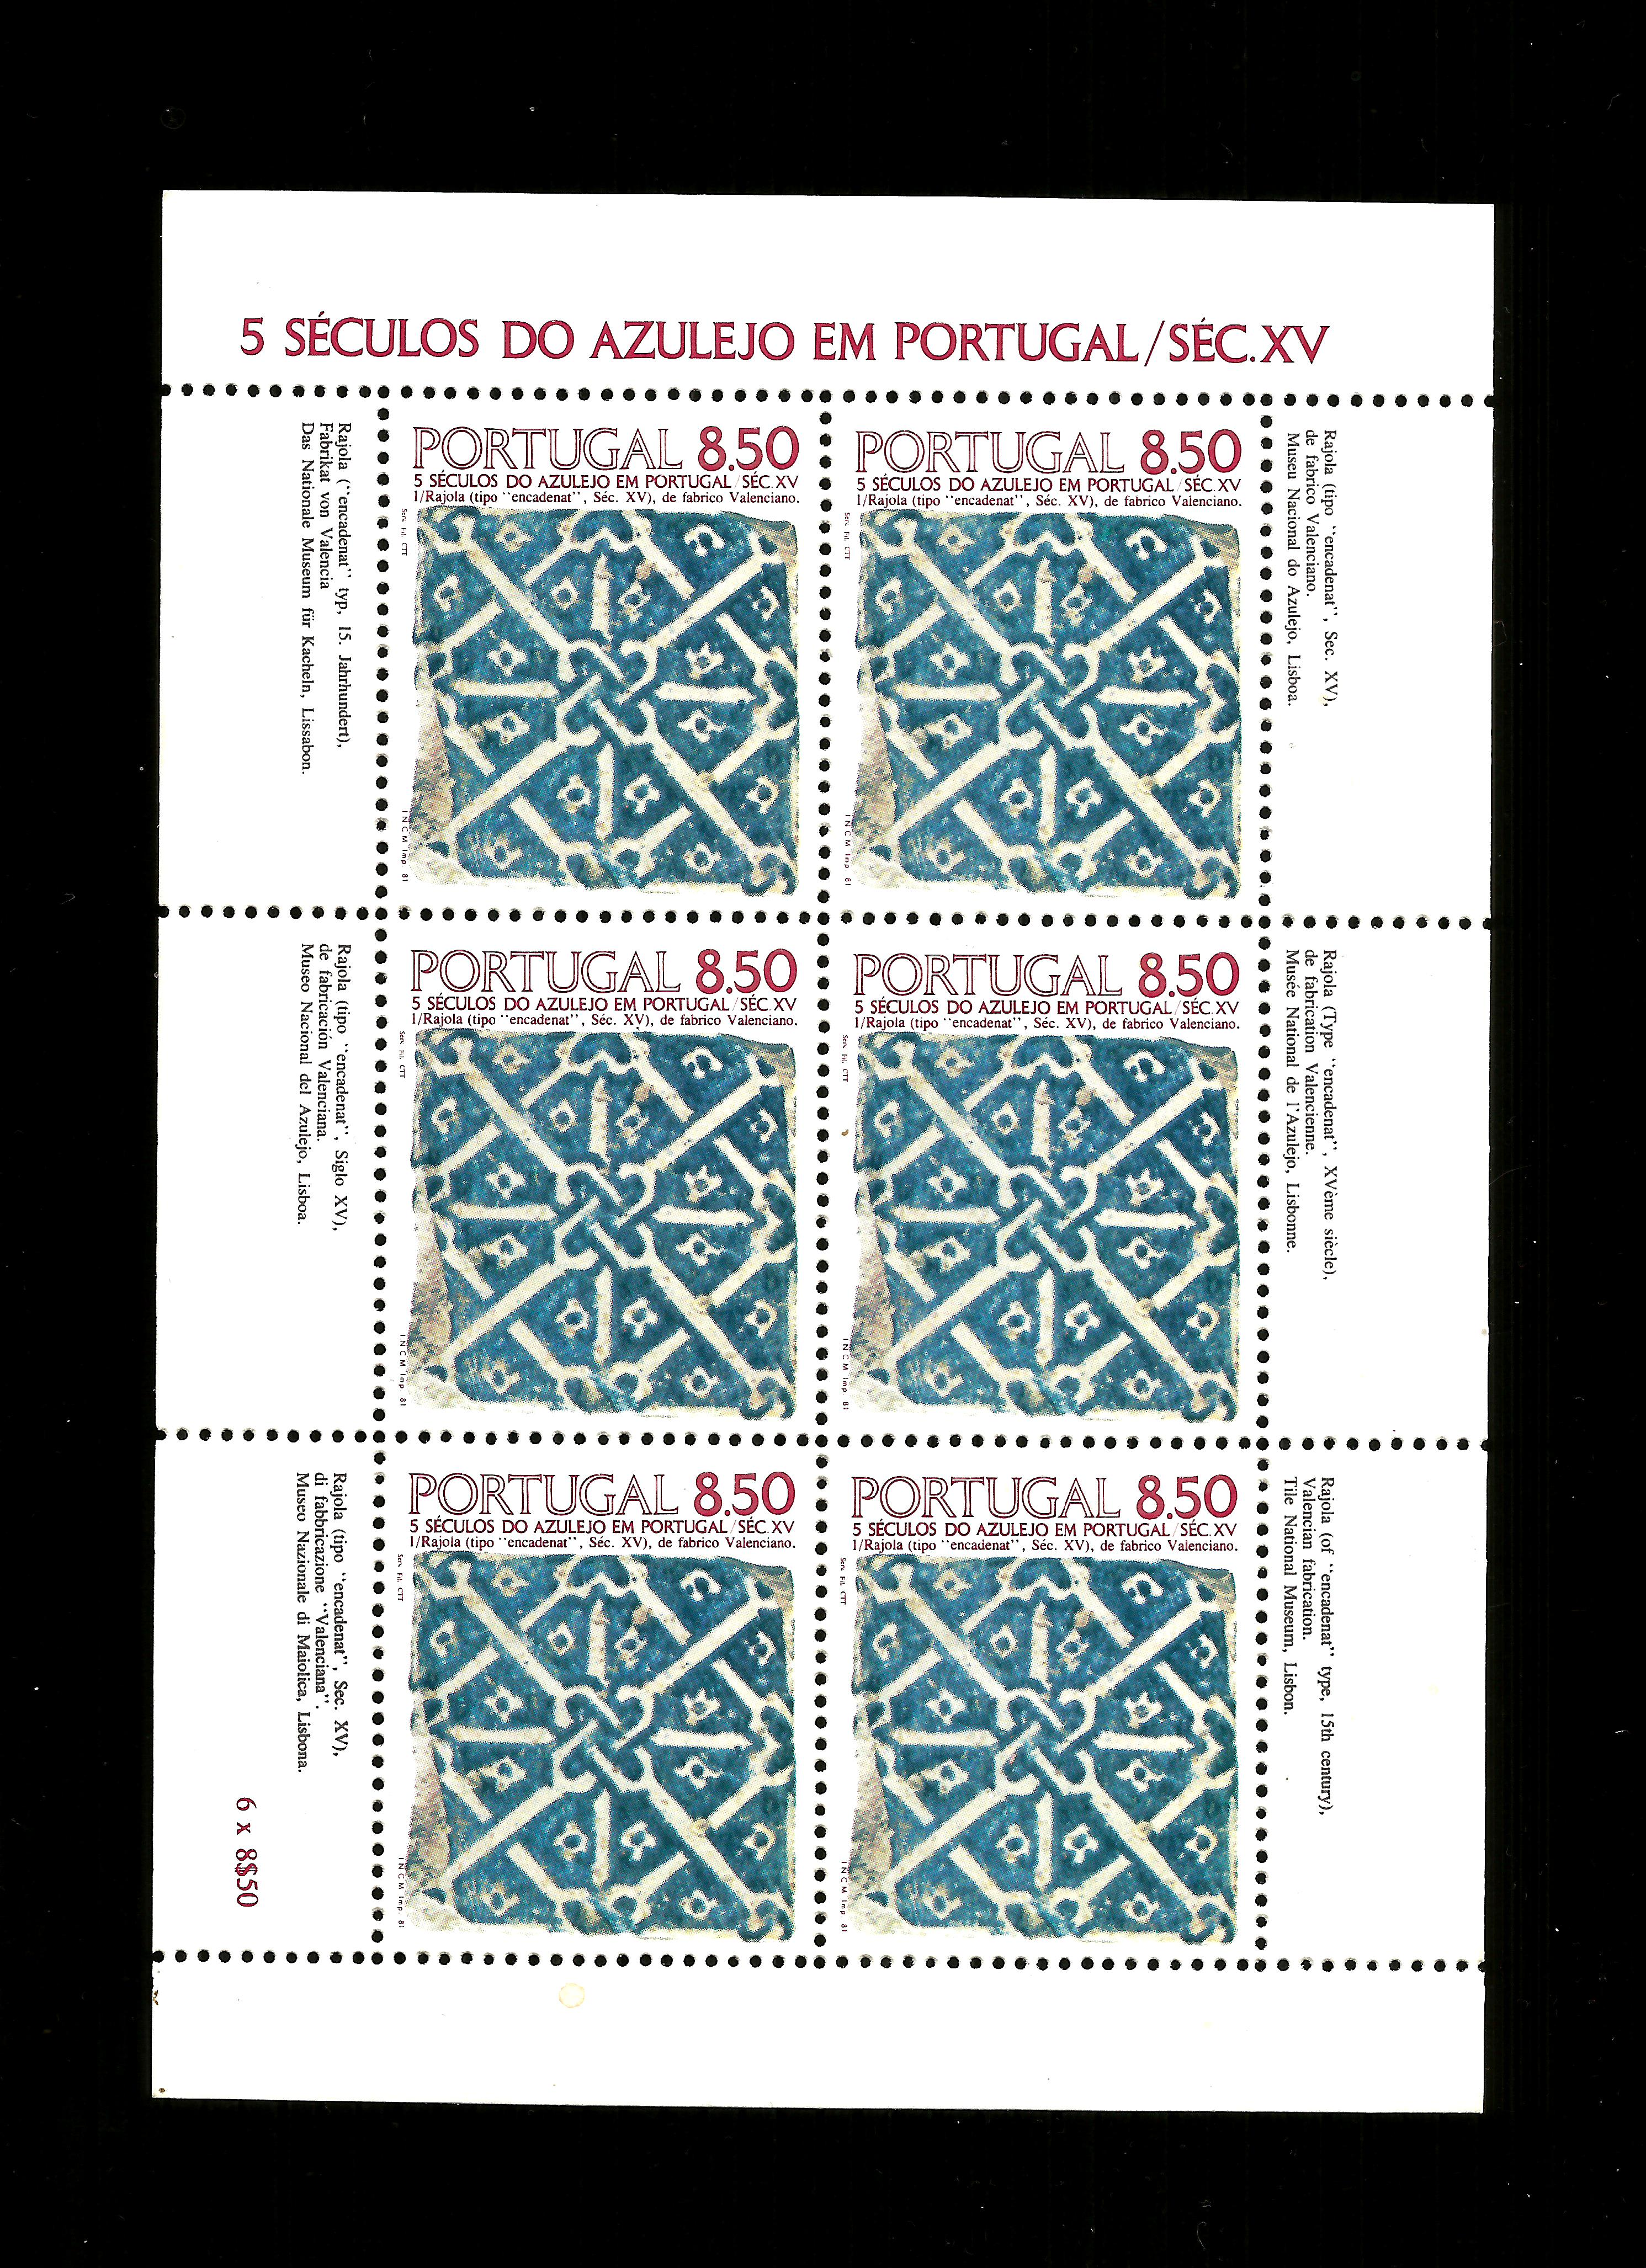 PORTUGAL 1981 TILES (1st series) **VF MNH M/SHEET**